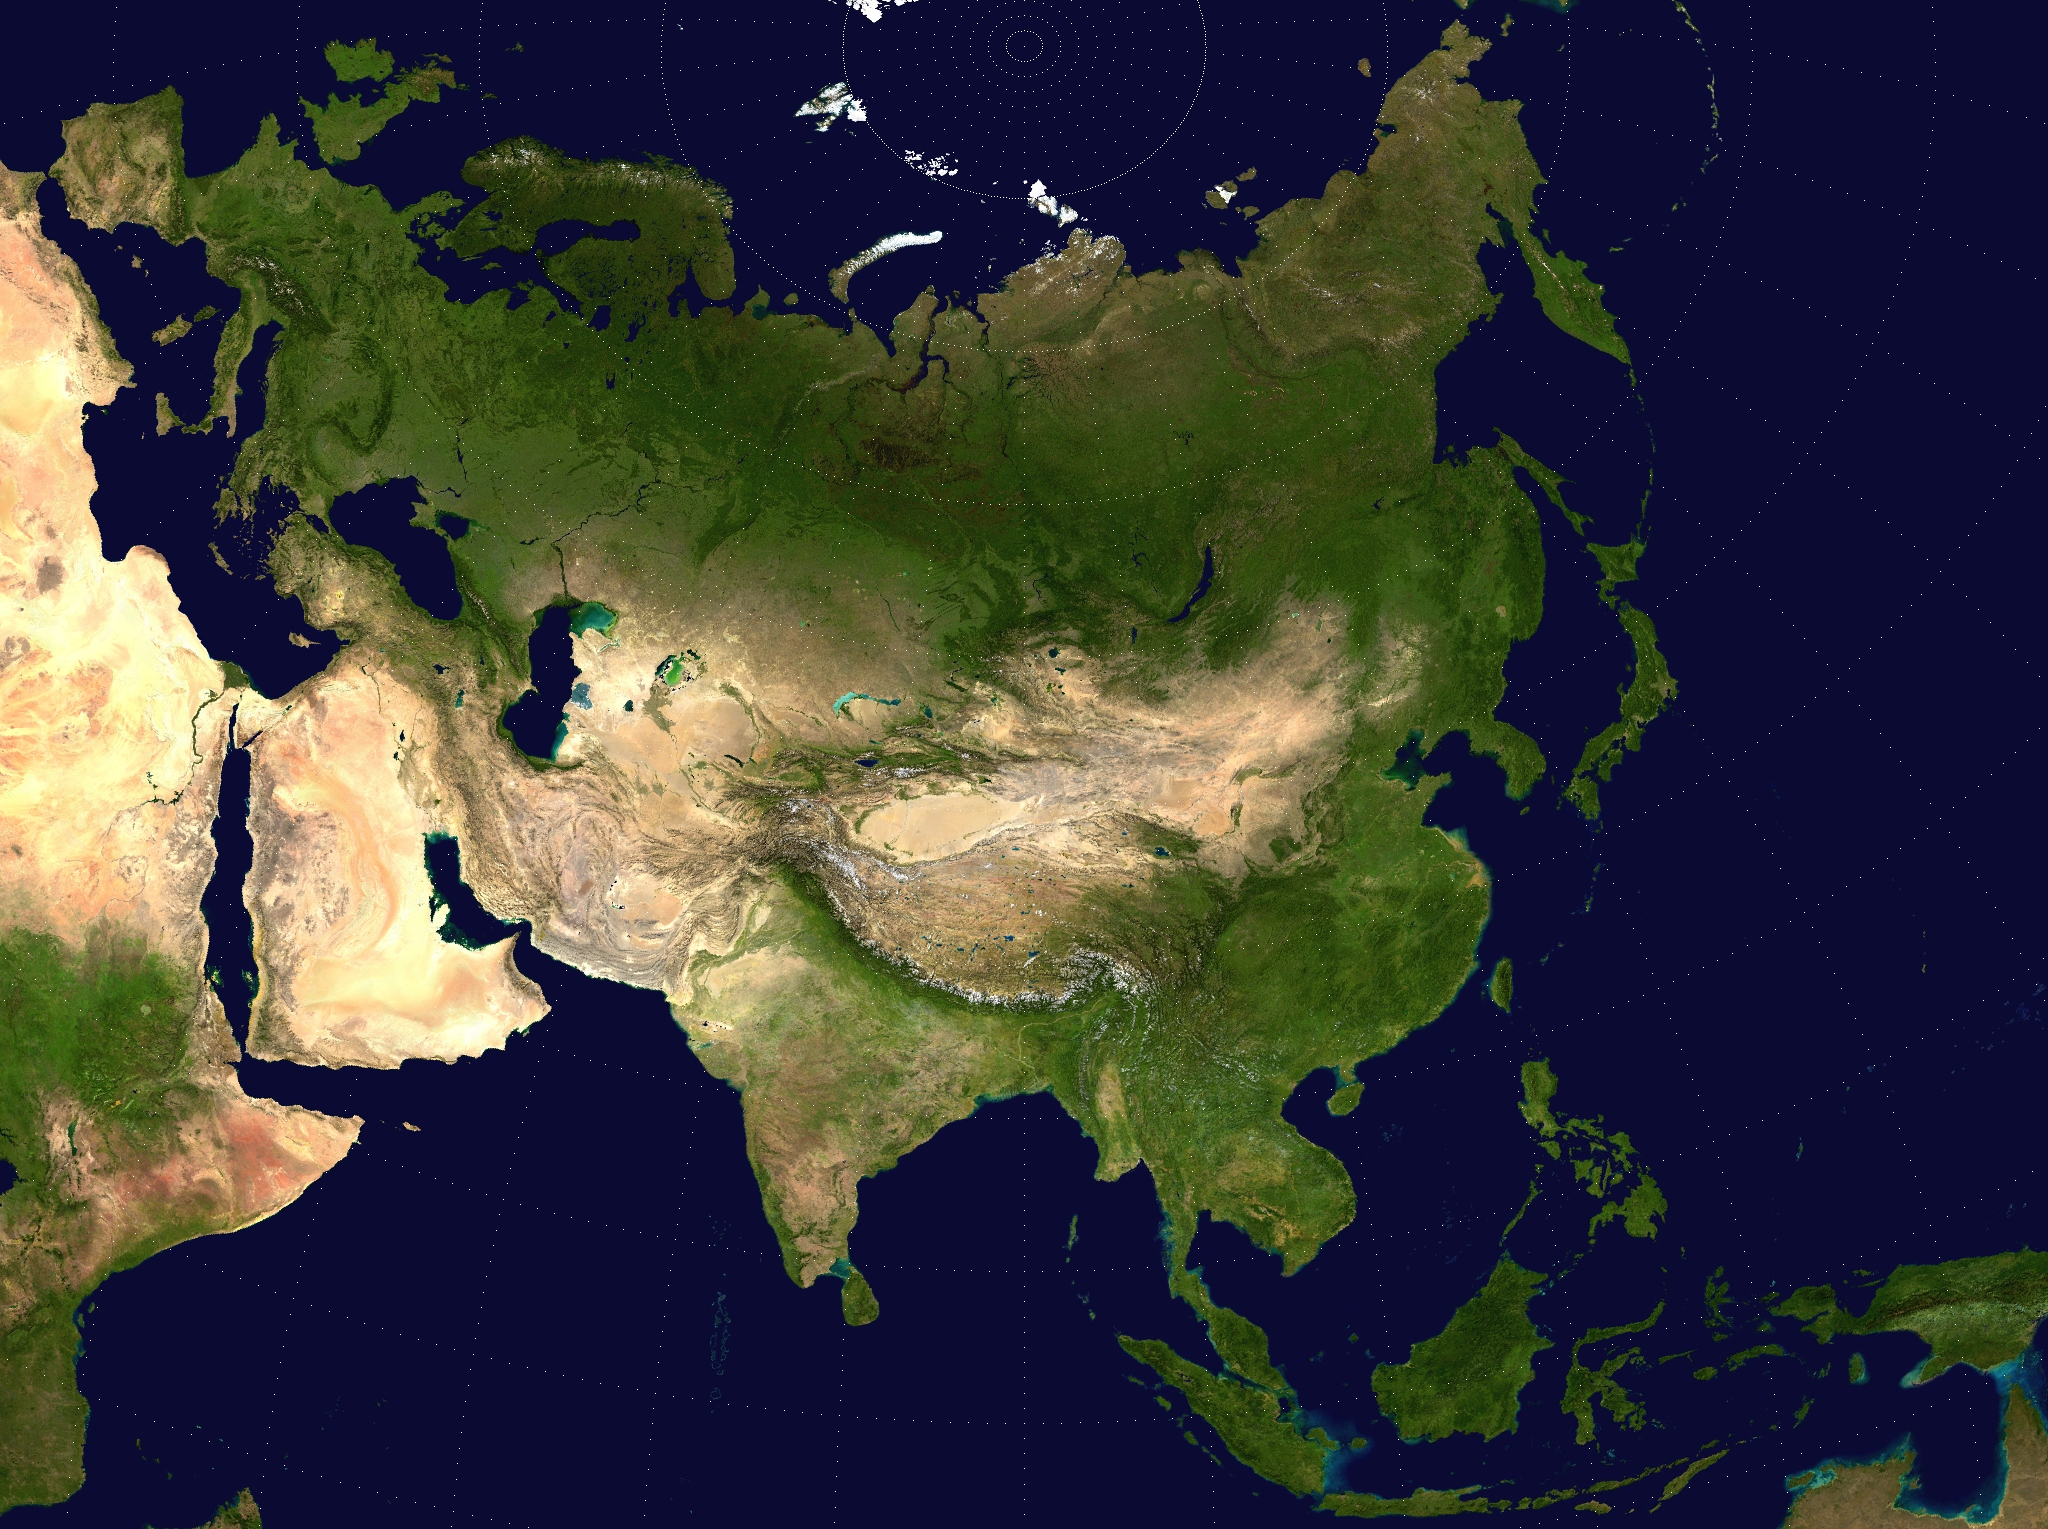 Eurasia with surrounding areas of Africa and Australasia visible